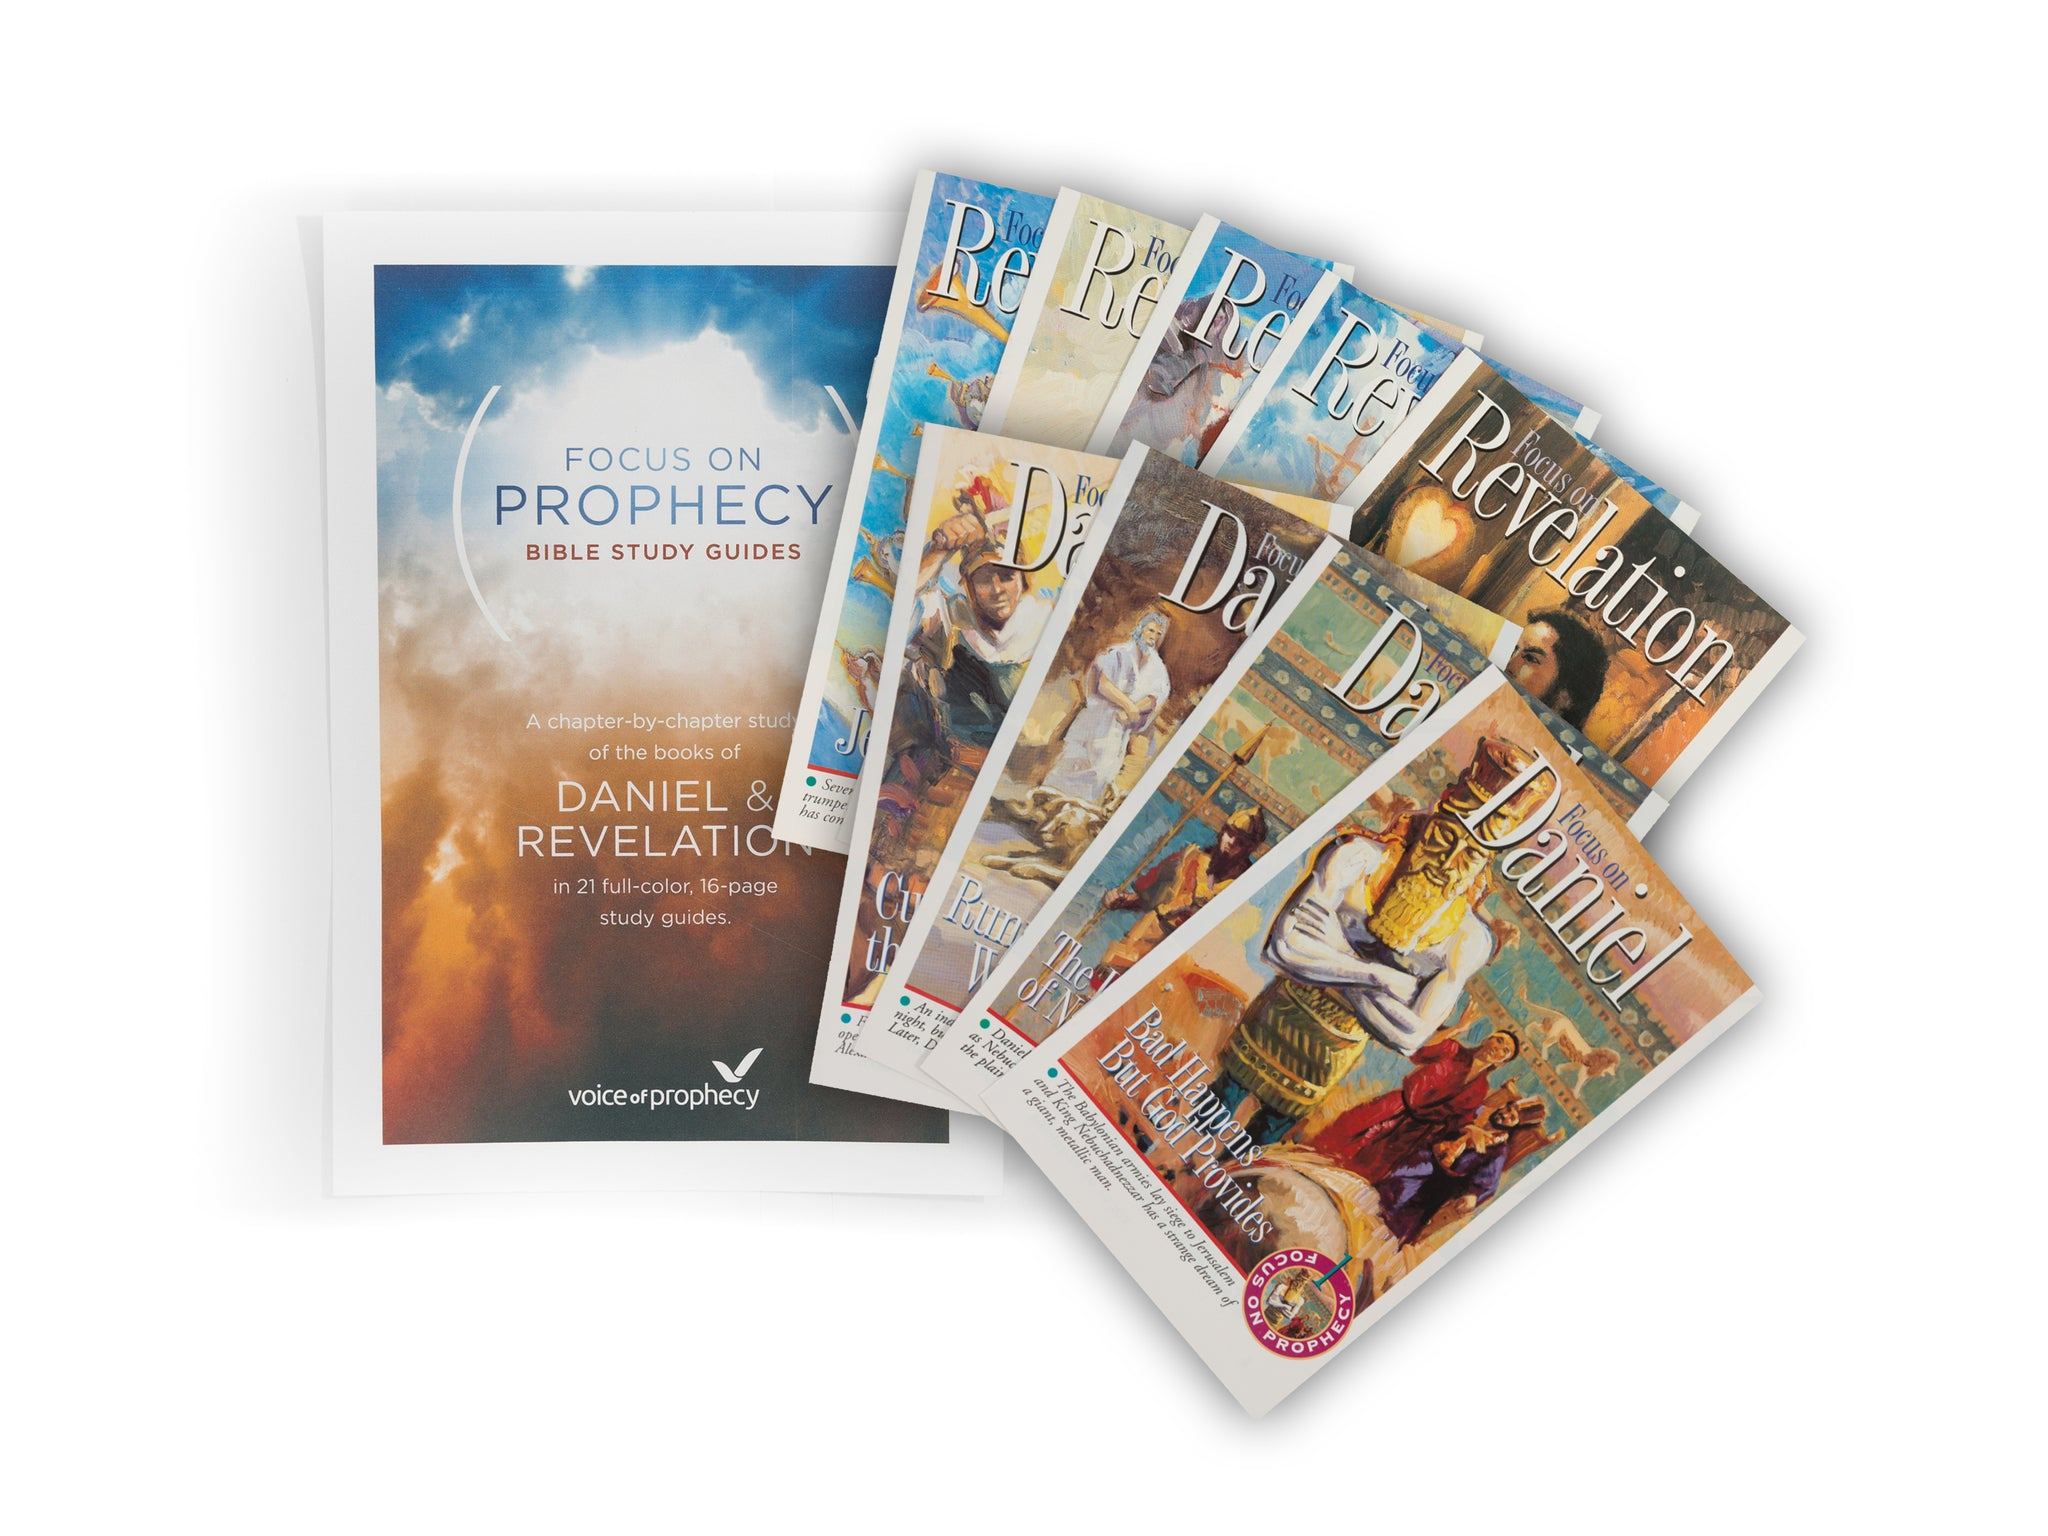 Focus on Prophecy Bible Study Guides - Full Set